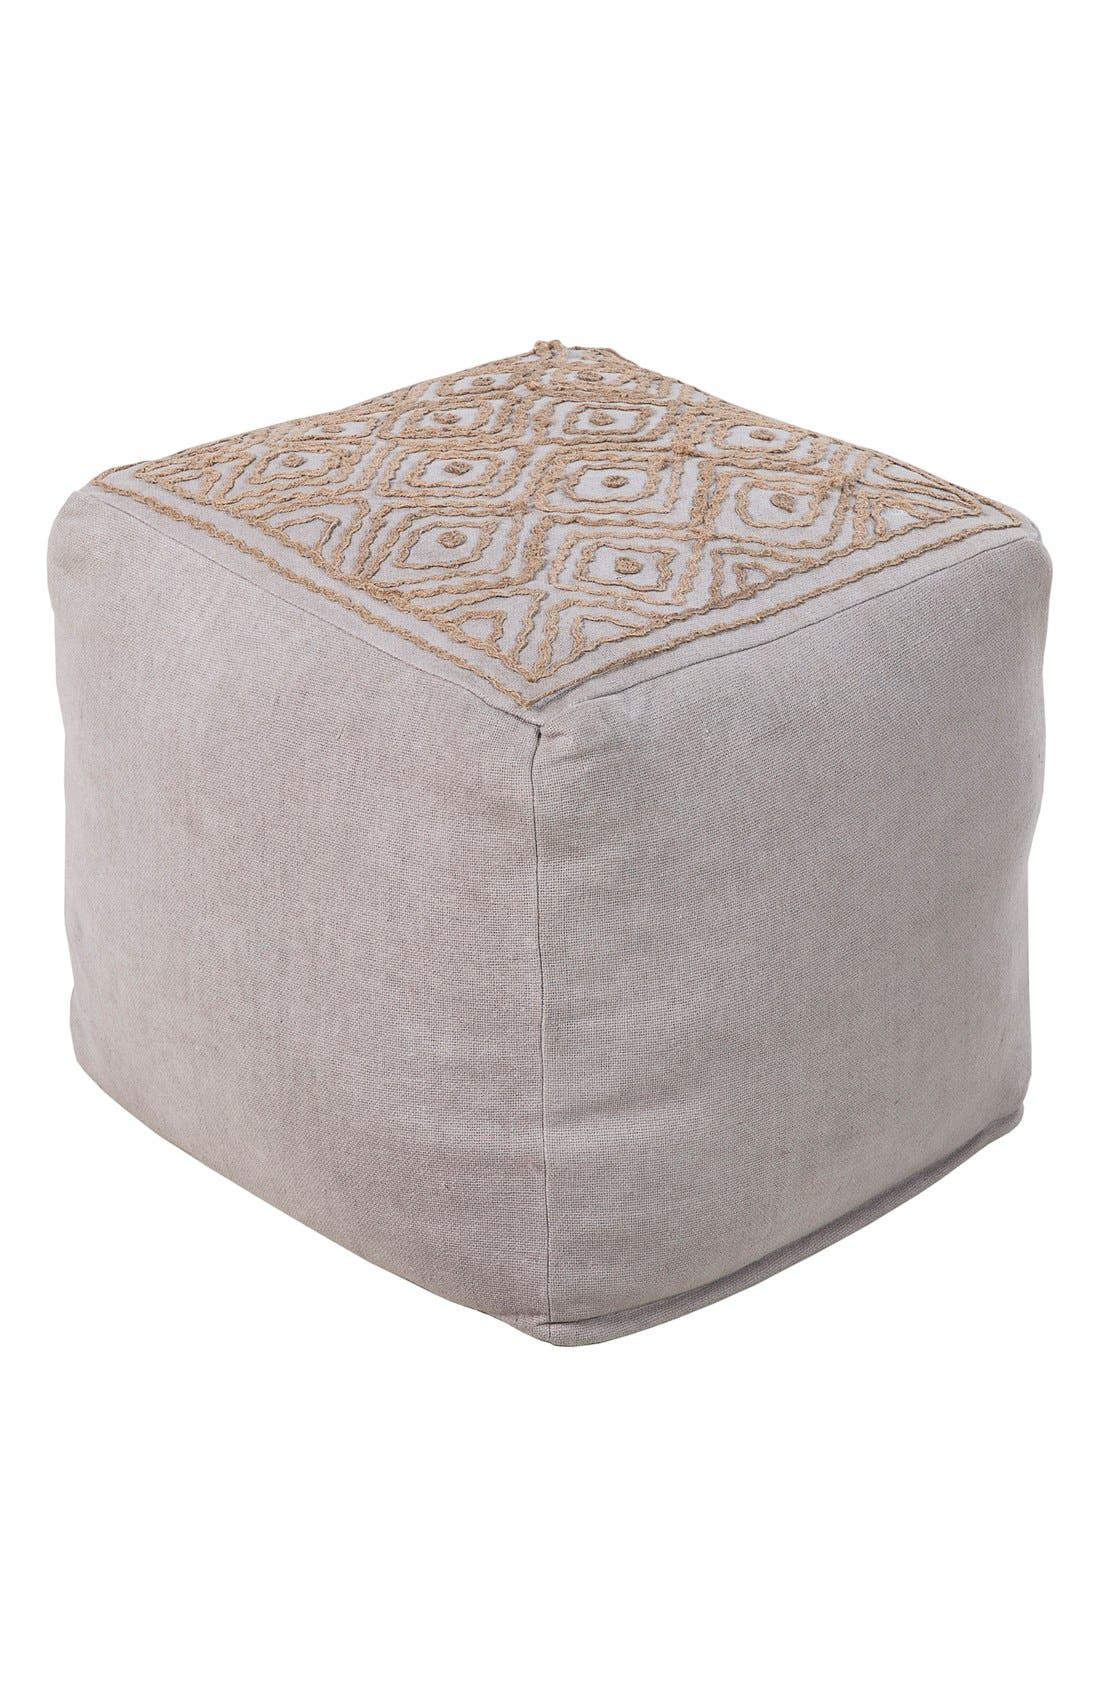 'Atlas' Pouf,                             Main thumbnail 1, color,                             Grey/ Taupe